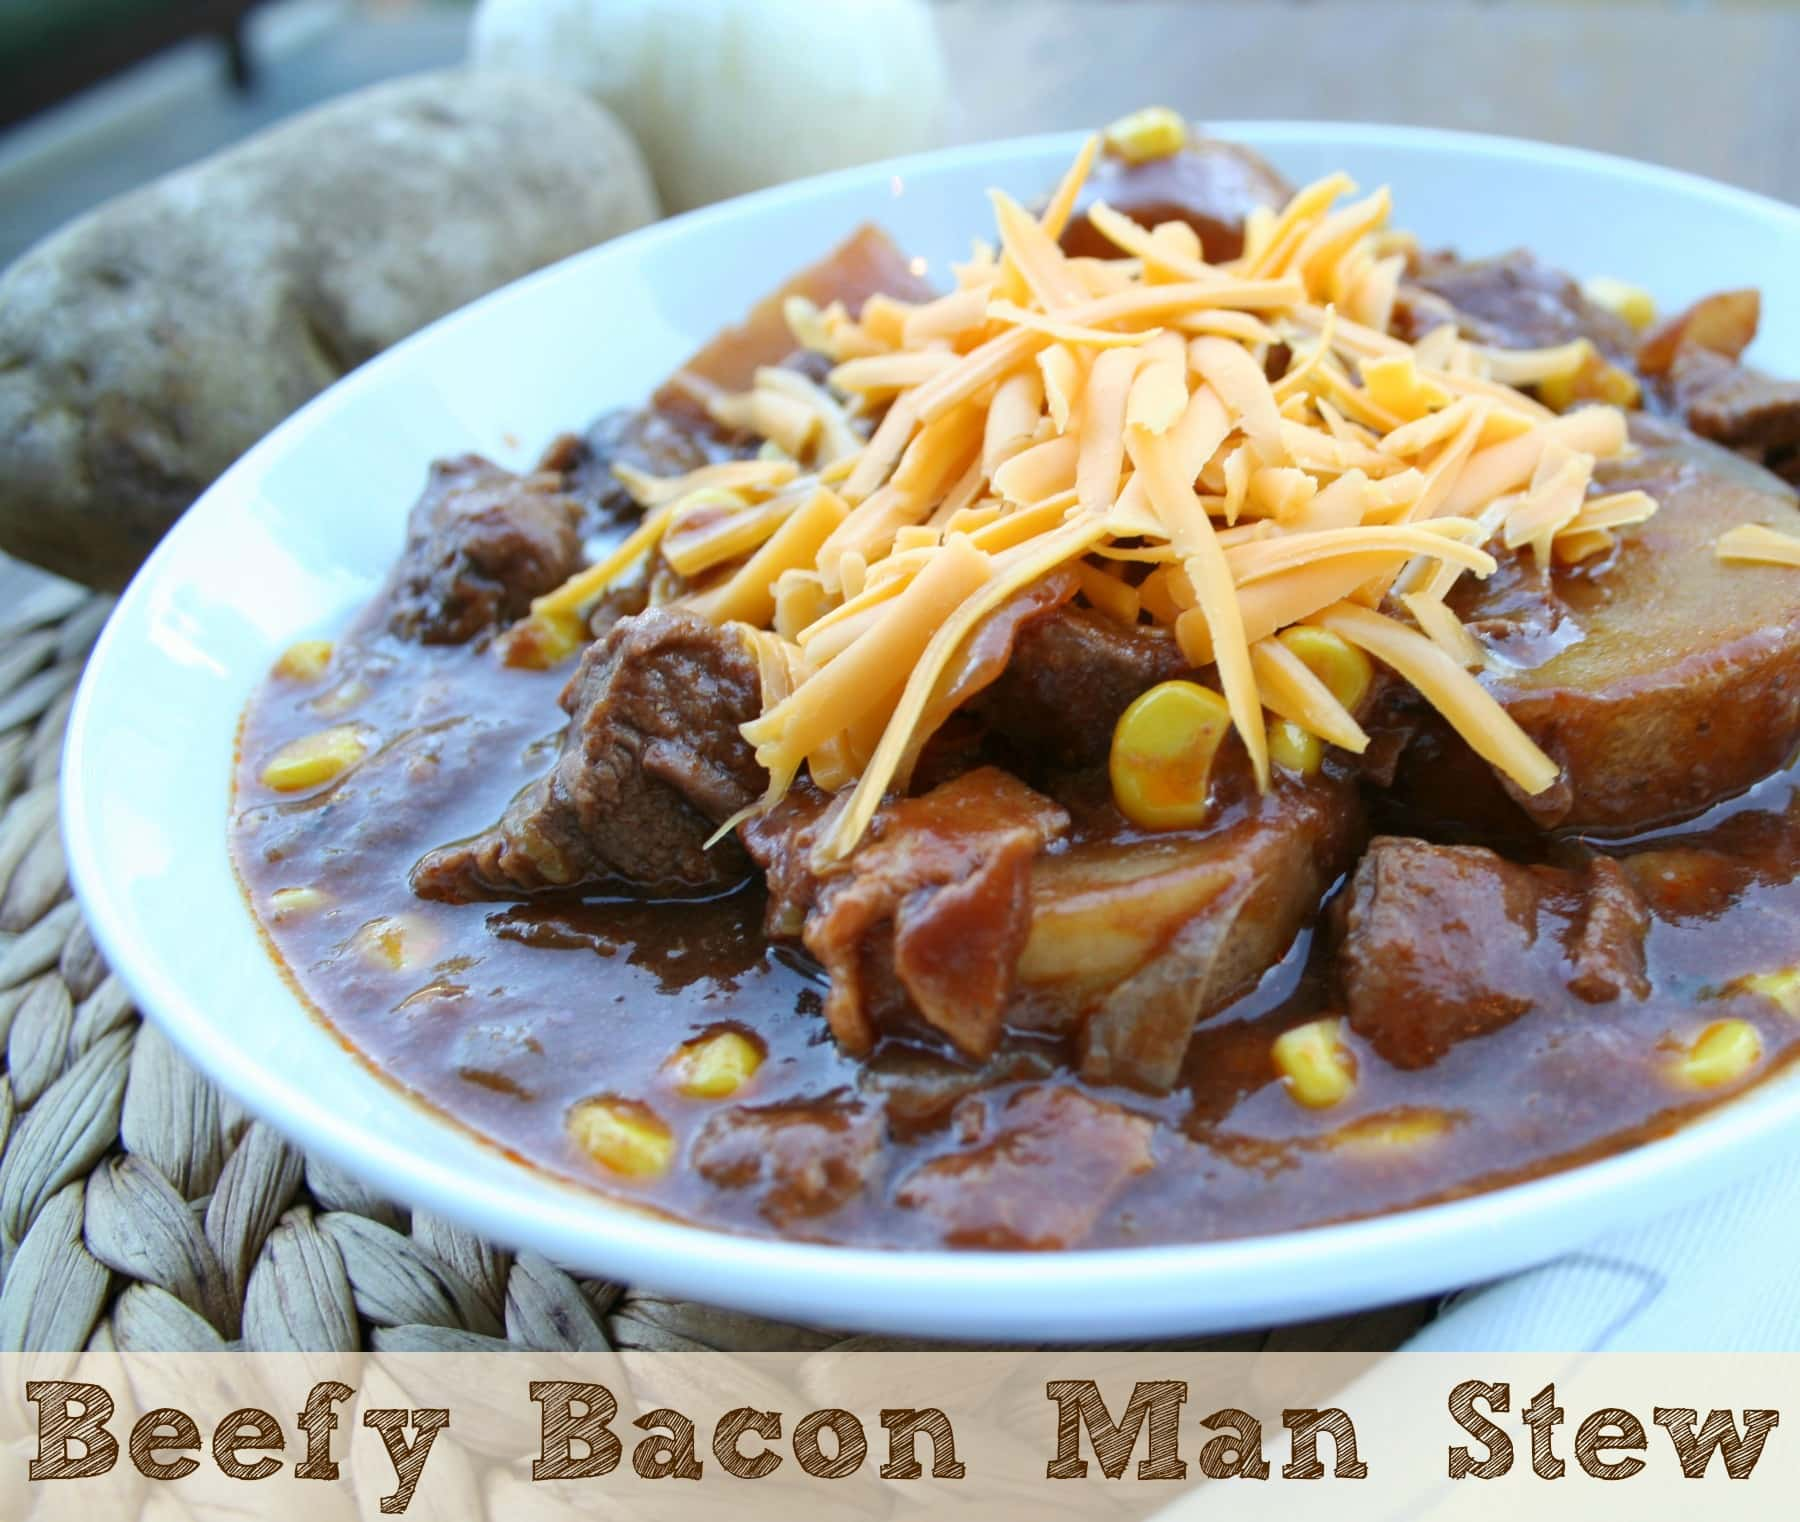 Beefy bacon man stew the magical slow cooker yahoo my recipe for beefy bacon man stew was in the top 10 recipes at the crock pot seasoning mixes recipe contest it was a great experience forumfinder Image collections